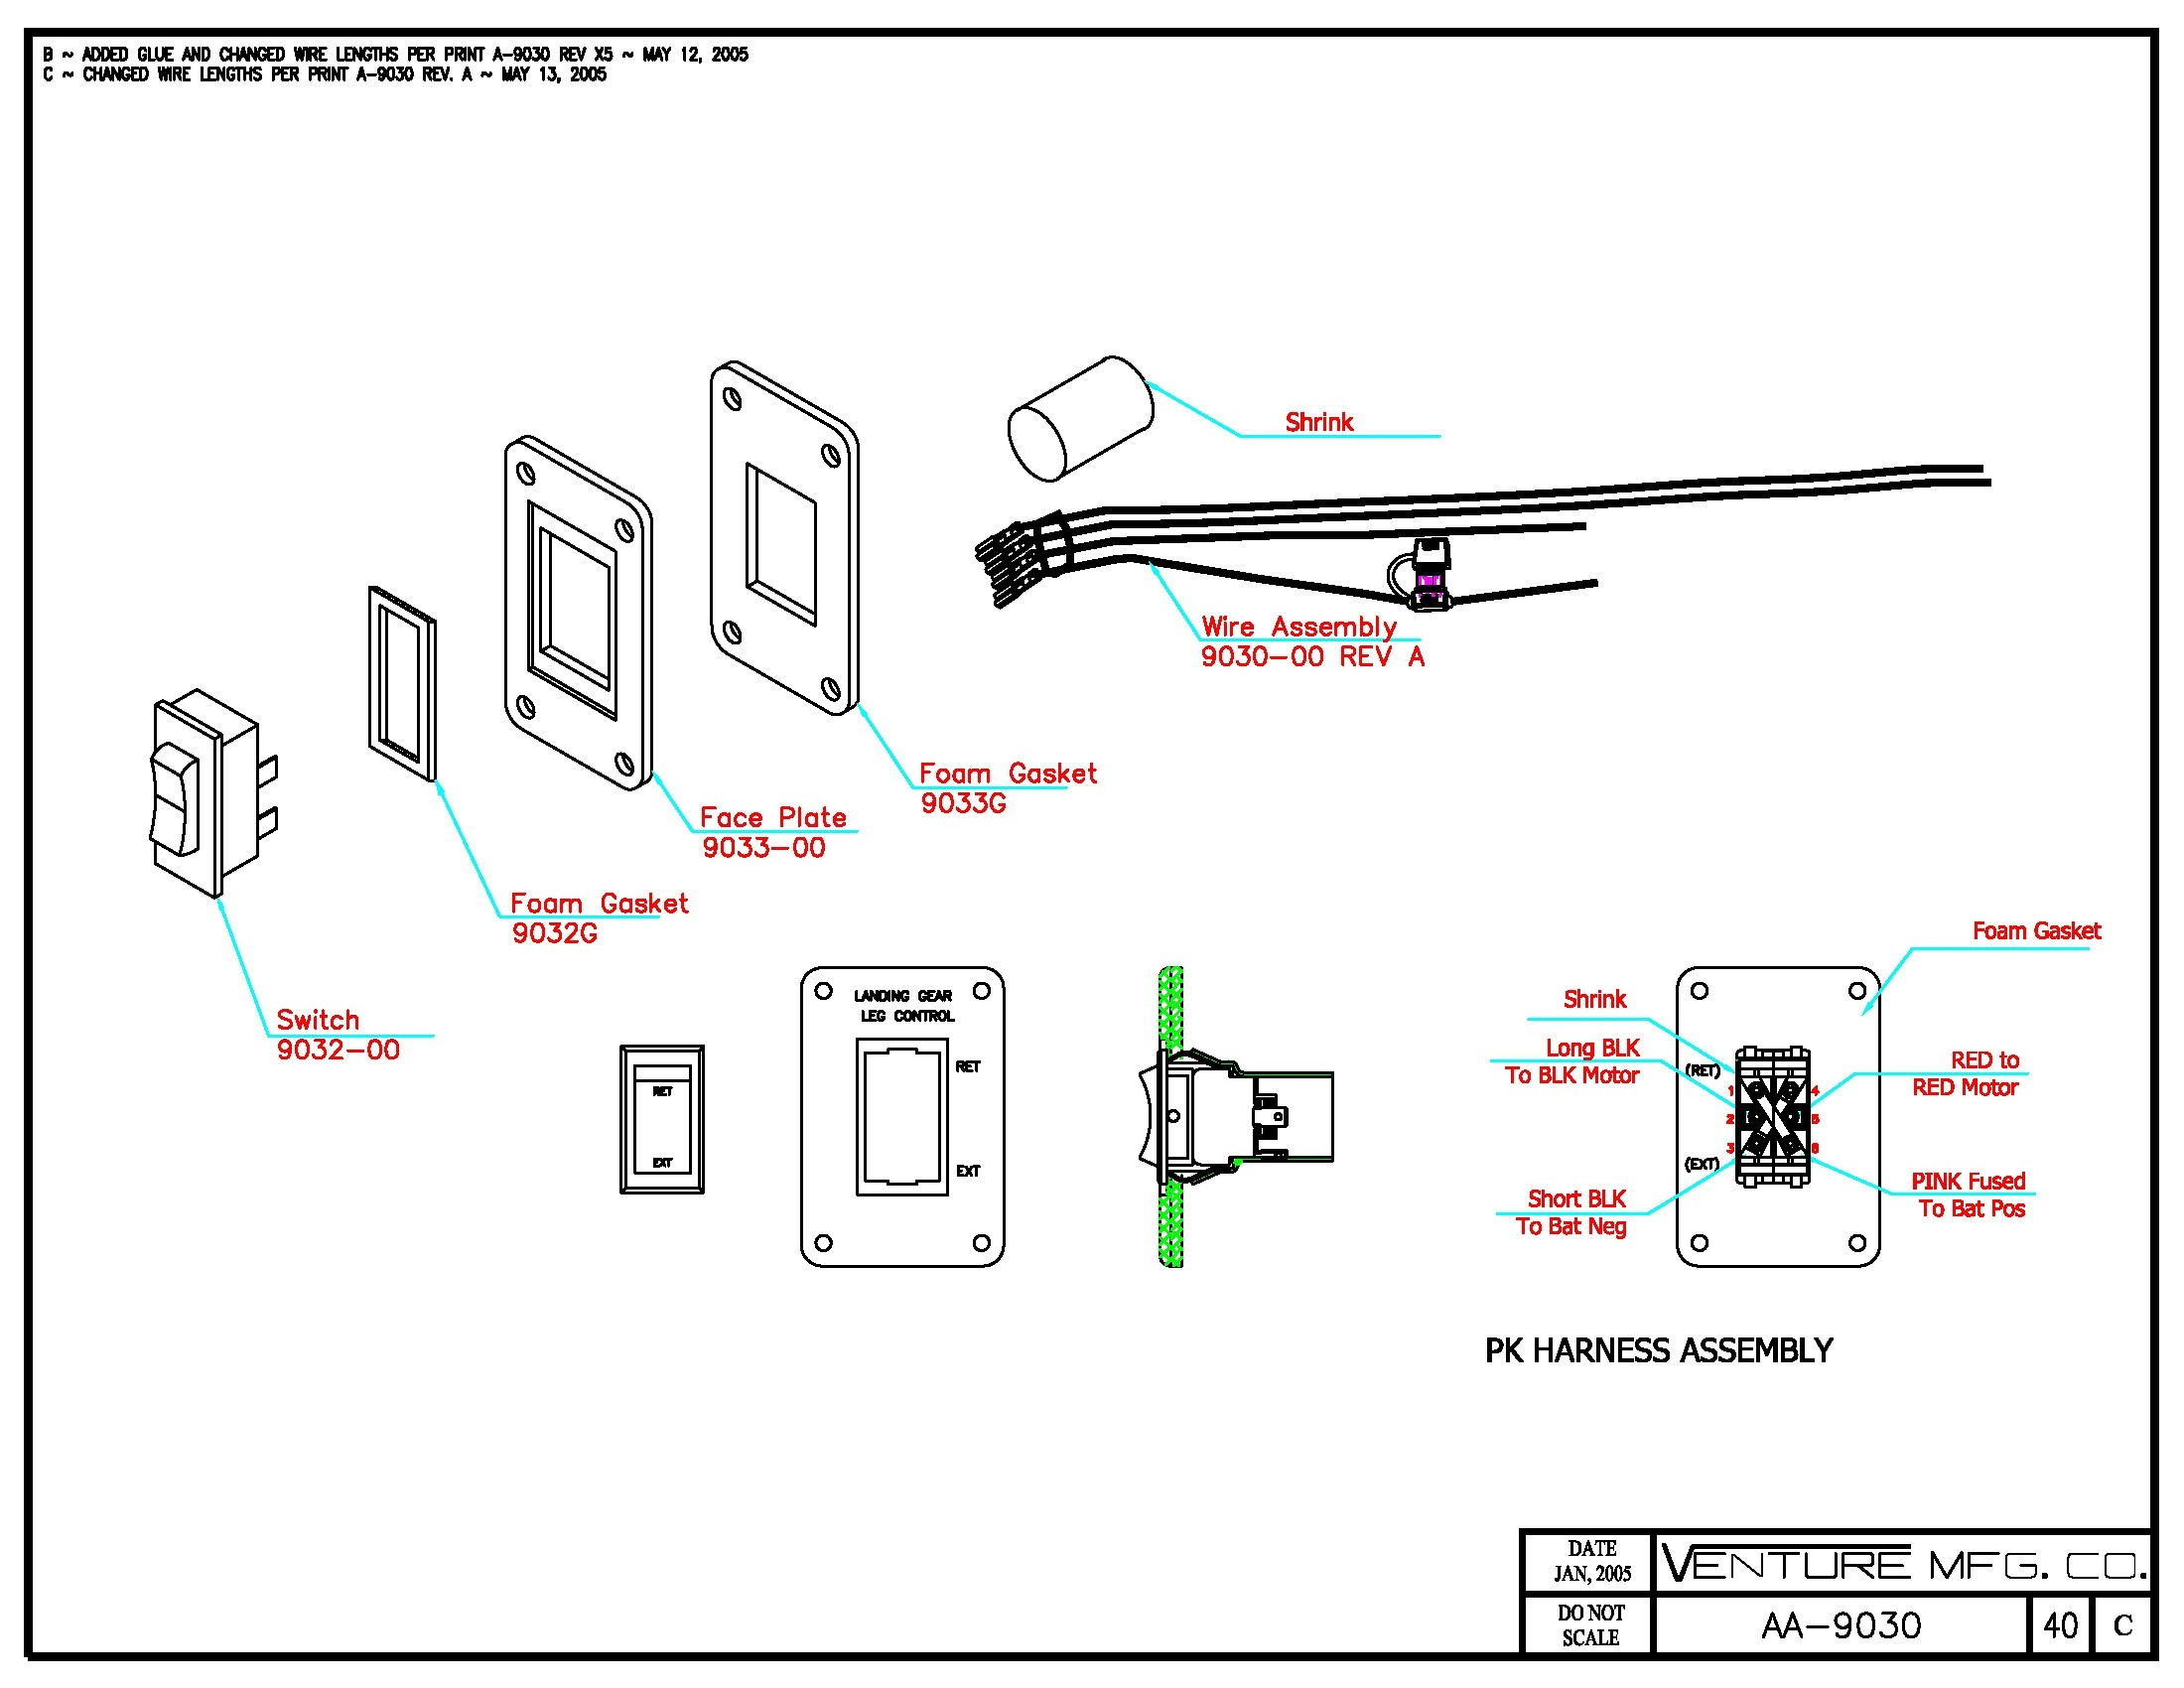 rv slide out switch wiring diagram Collection-Trailer Lighting Diagram Rv Slide Out Switch Wiring 16-k